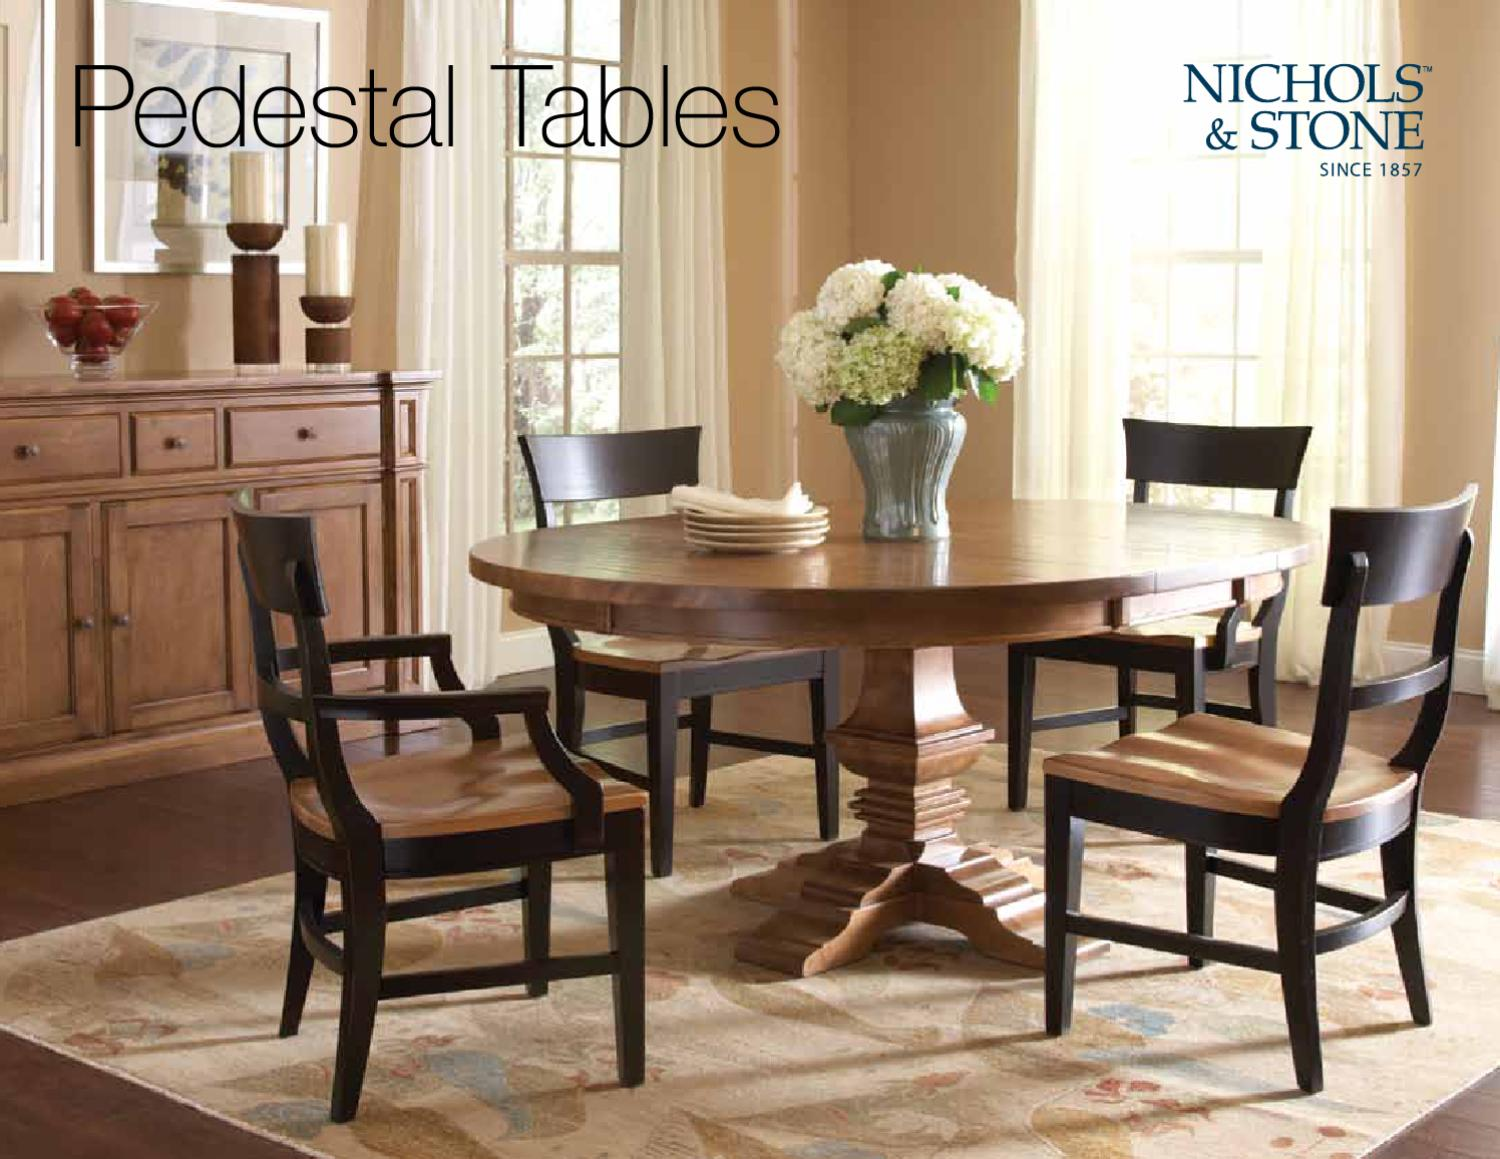 Pedestal Tables By Nichols Stone By Stickley